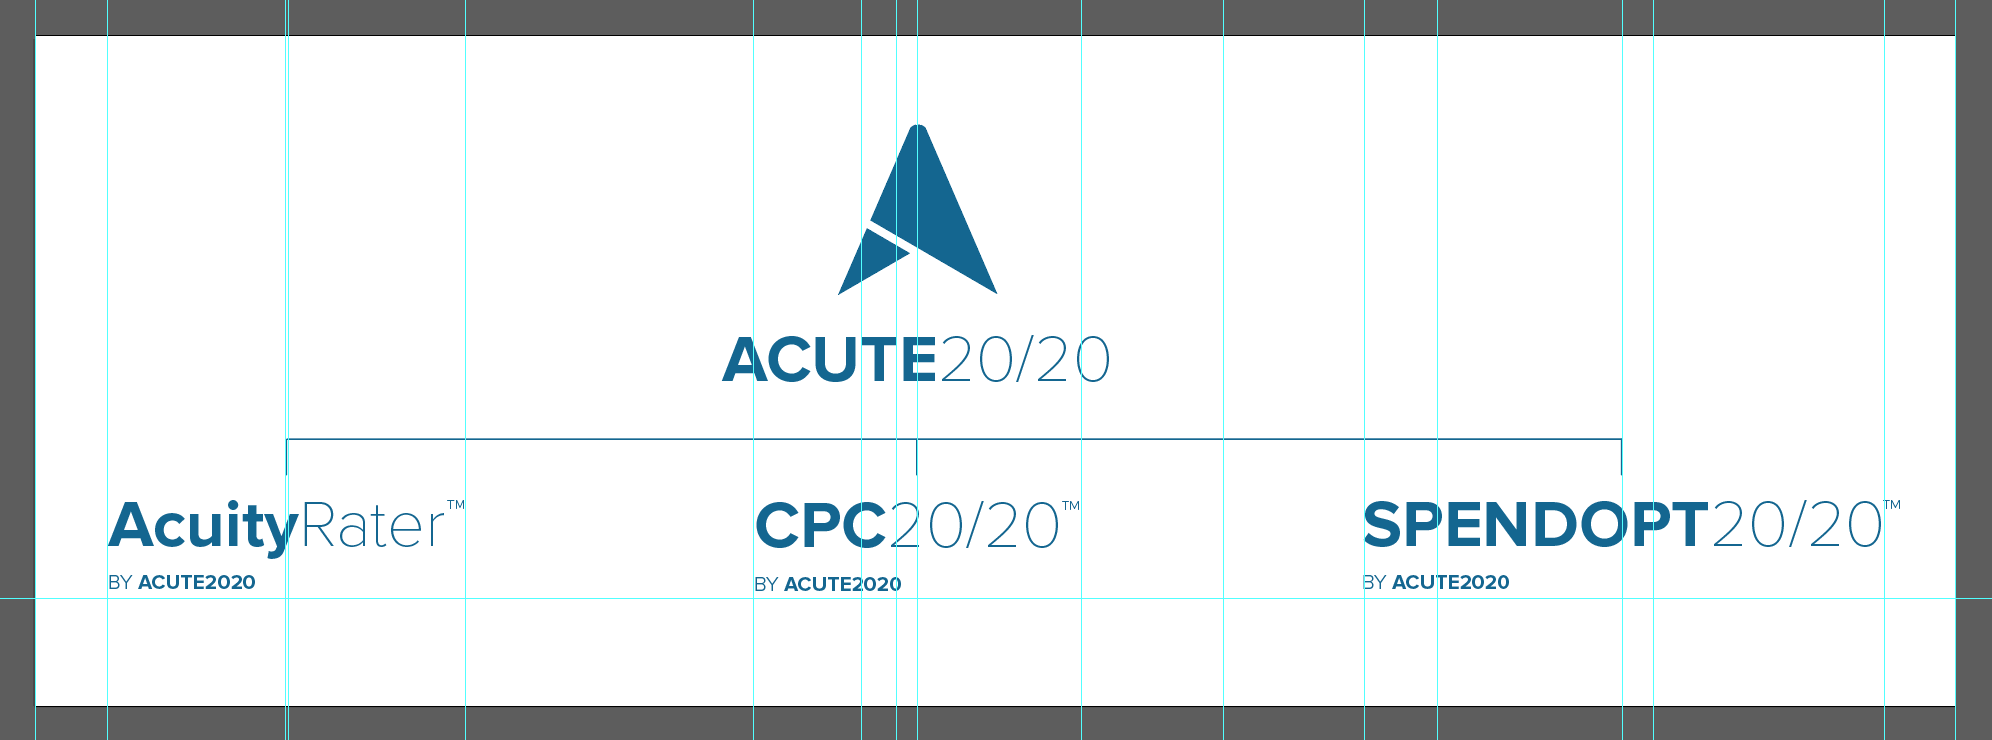 Image of Quetra Creative marketing and brand identity for Acute2020